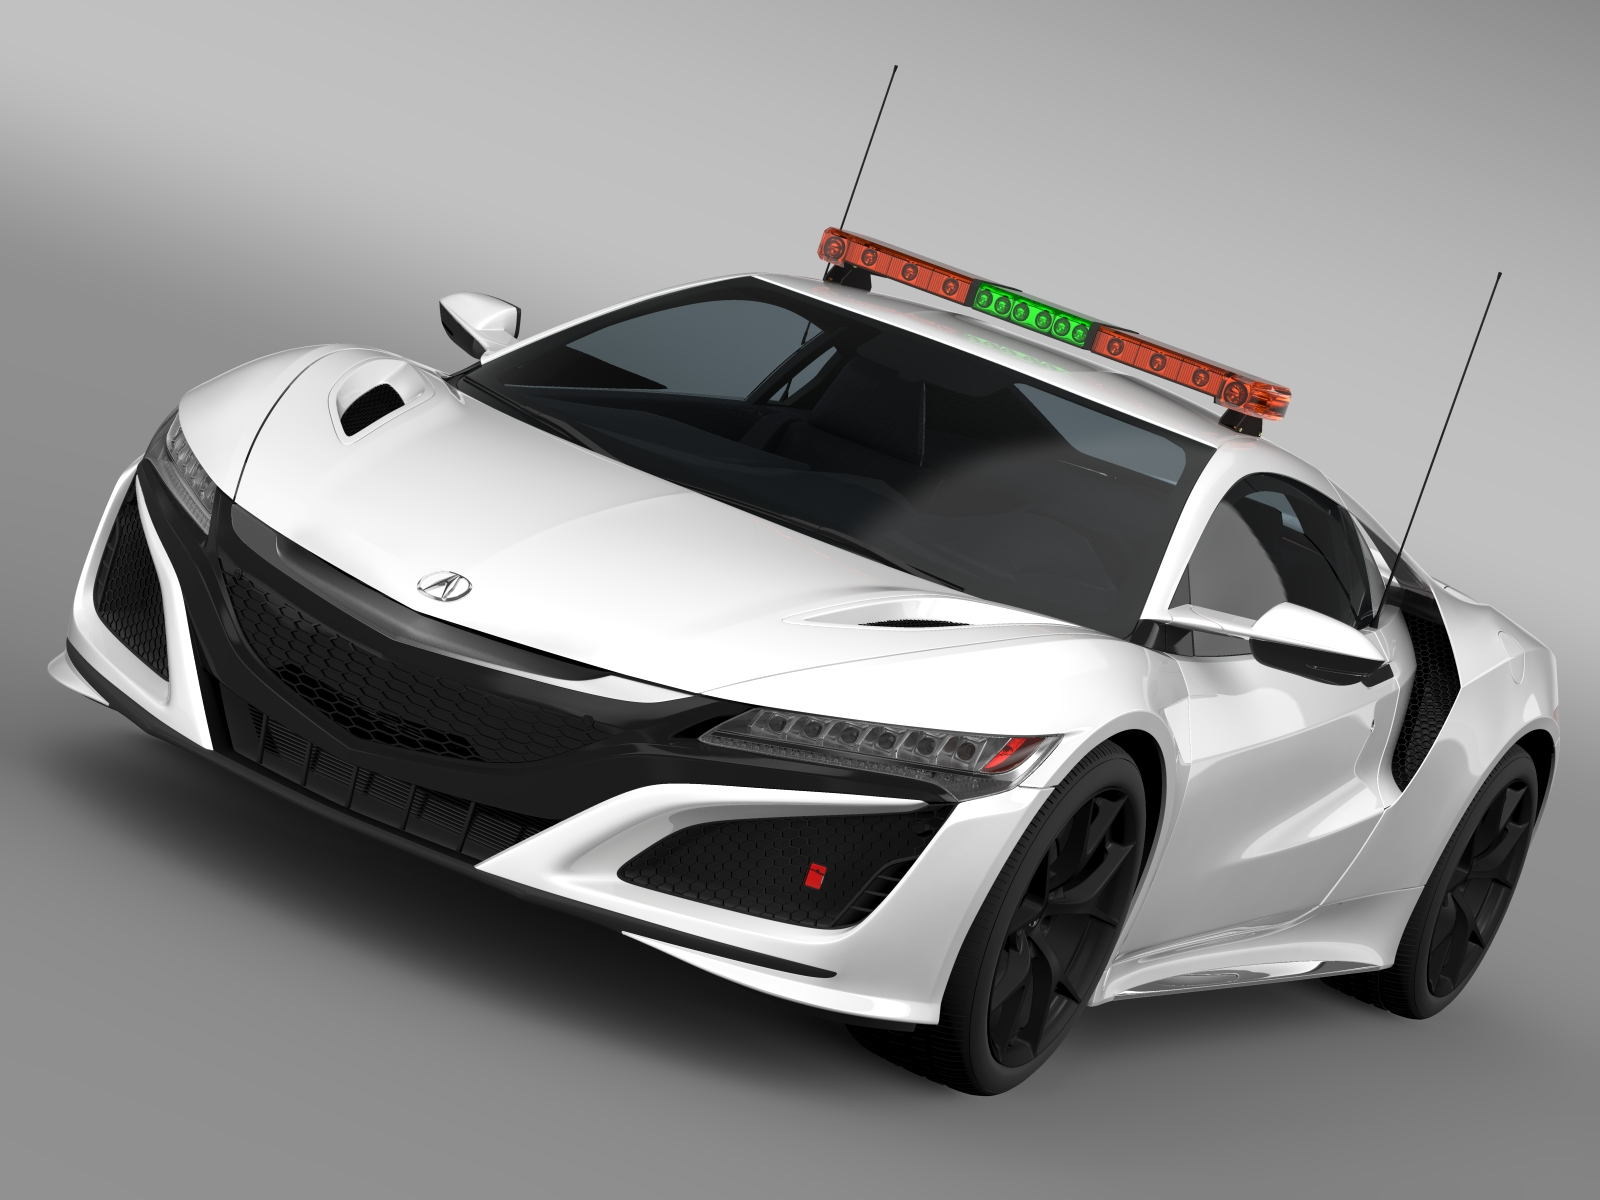 acura nsx safety car 2016 3d model 3ds max fbx c4d lwo ma mb hrc xsi obj 215687